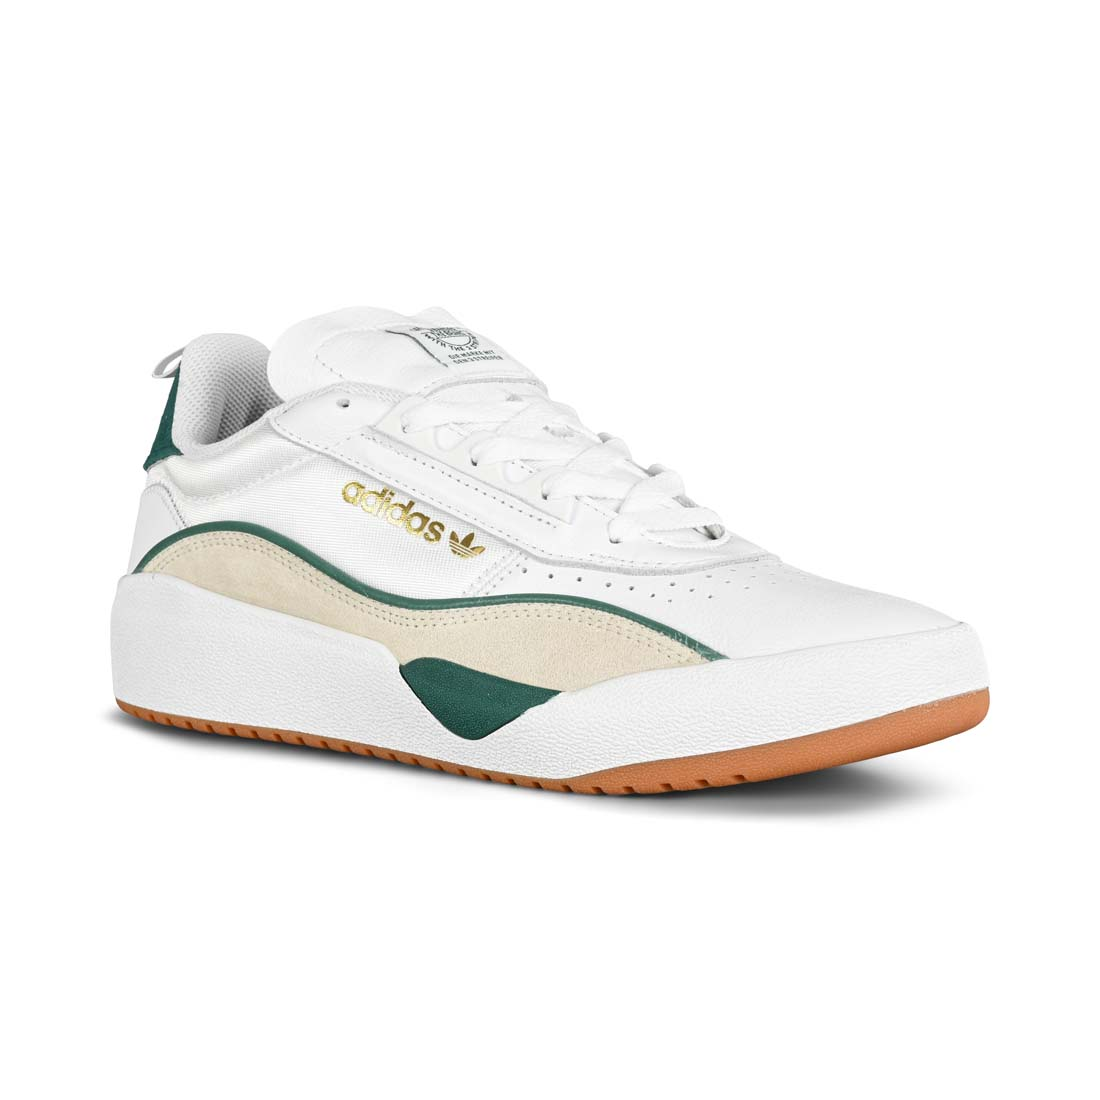 Adidas Liberty Cup Skate Shoes - White